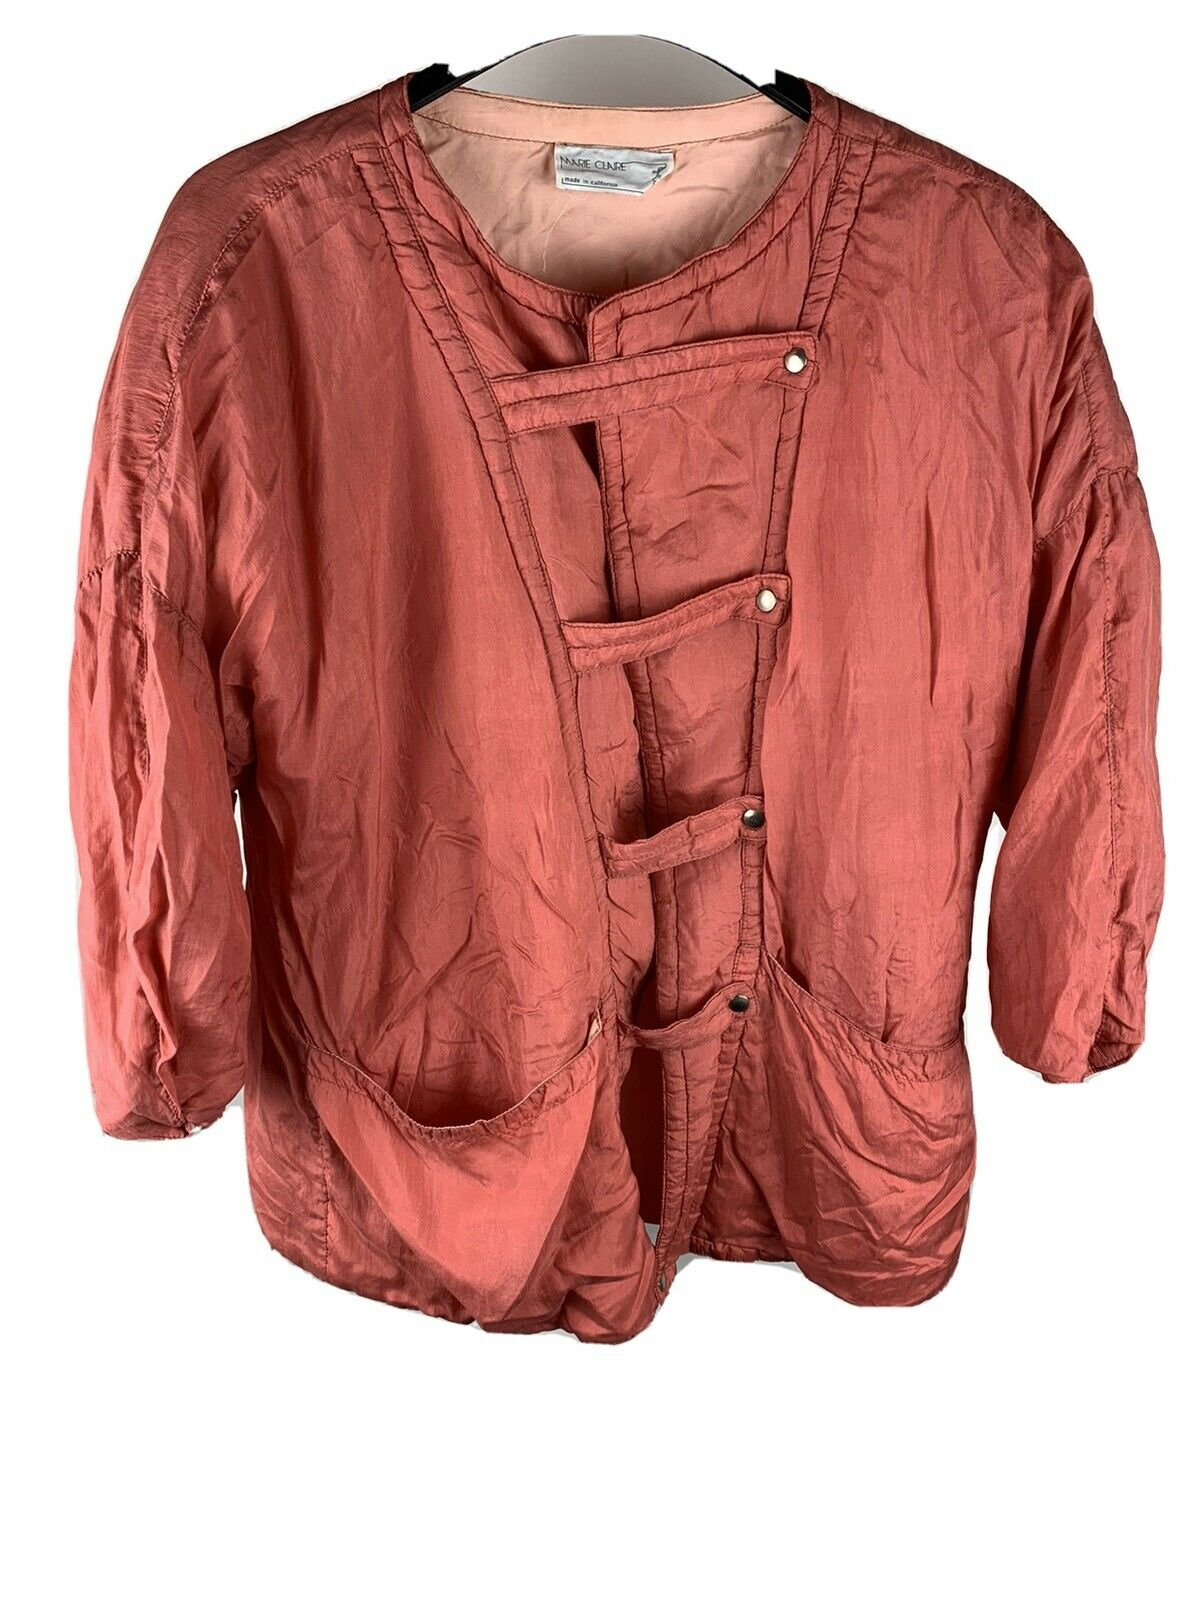 Vintage Womens Marie Claire Pink Jacket Made In C… - image 1